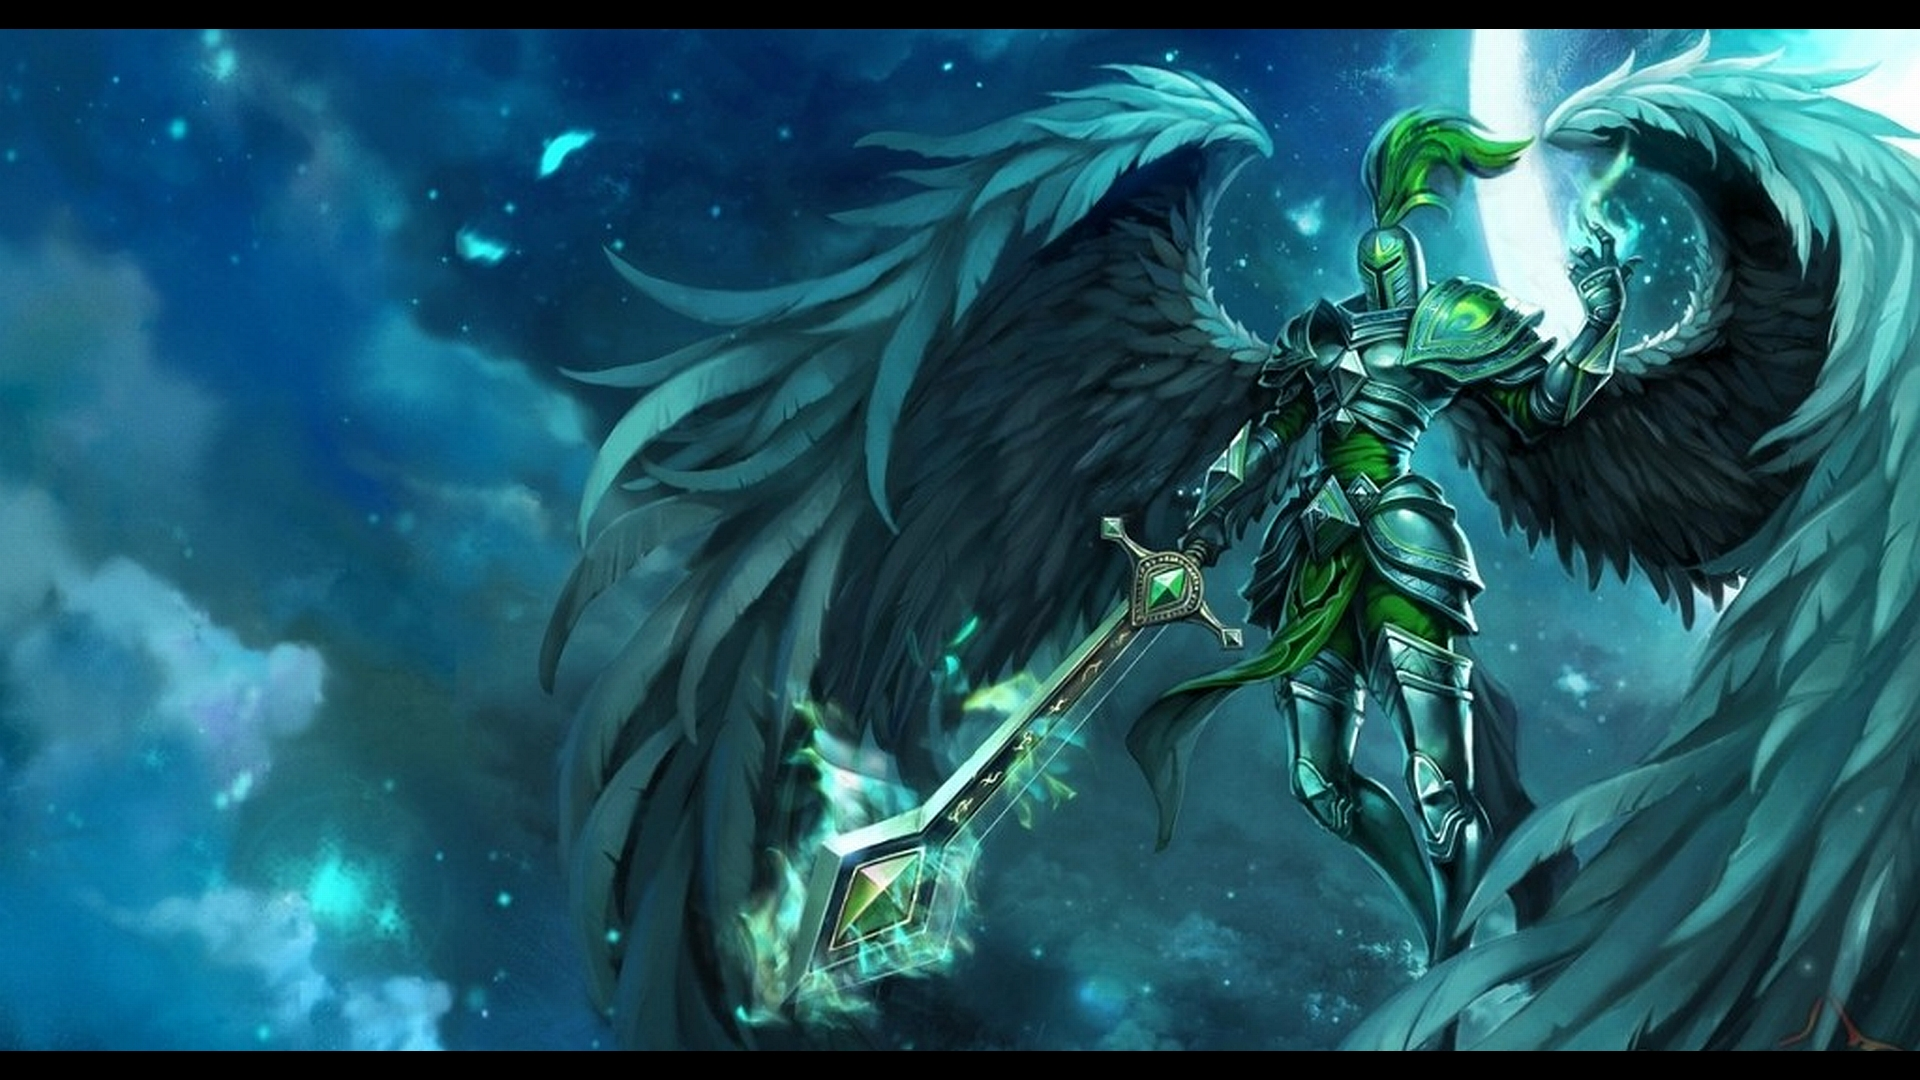 Dual Monitor Wallpaper League Of Legends: League Of Legends Full HD Wallpaper And Background